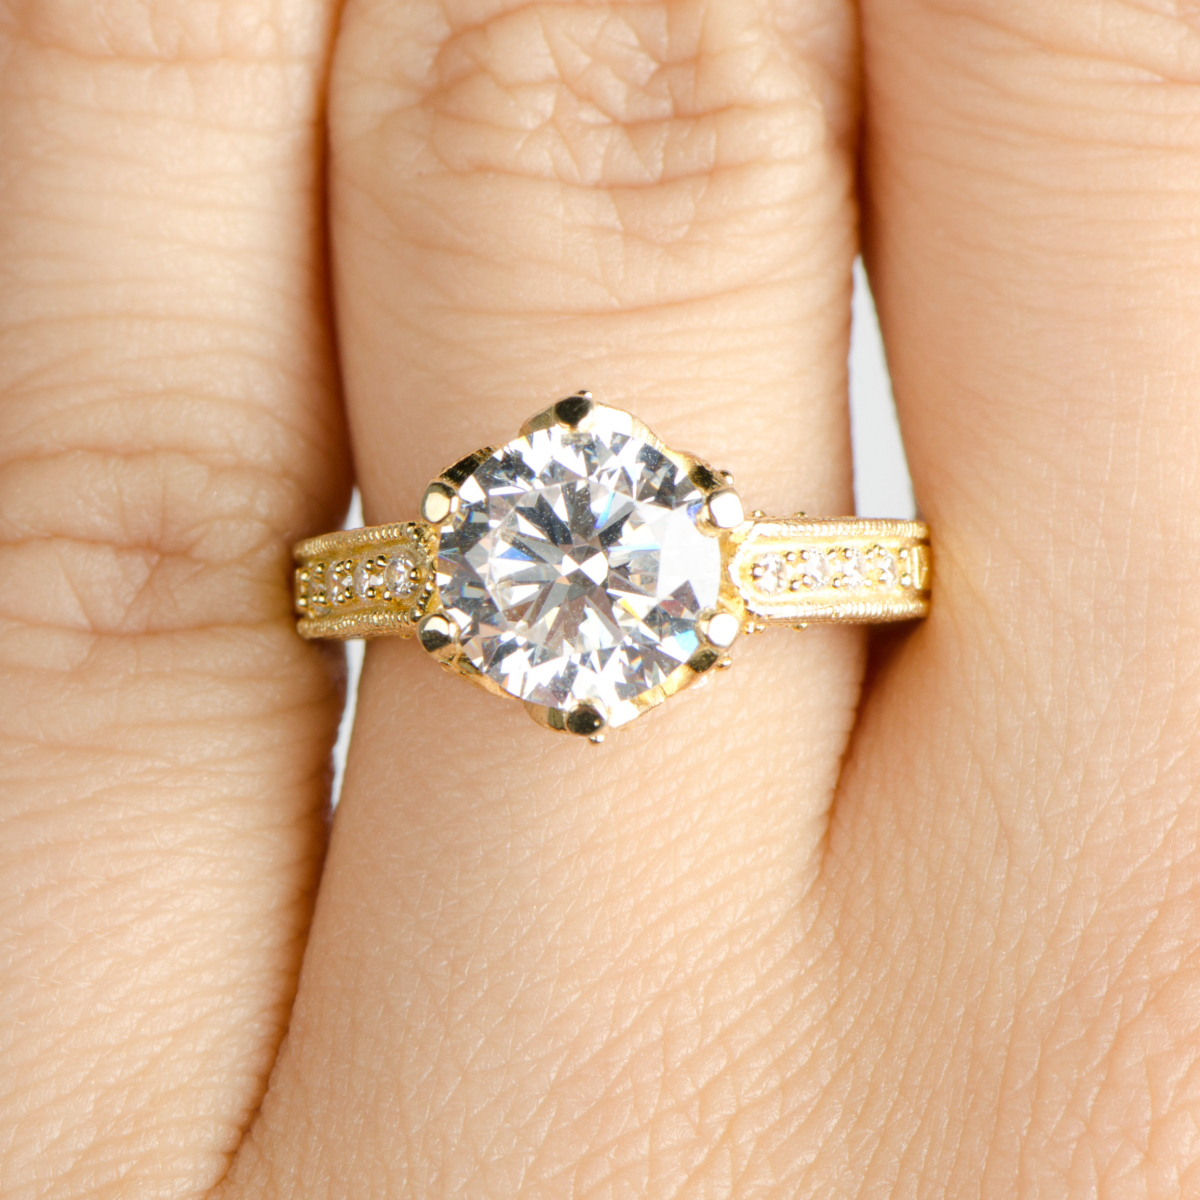 2 5 Carat Round Diamond Ring